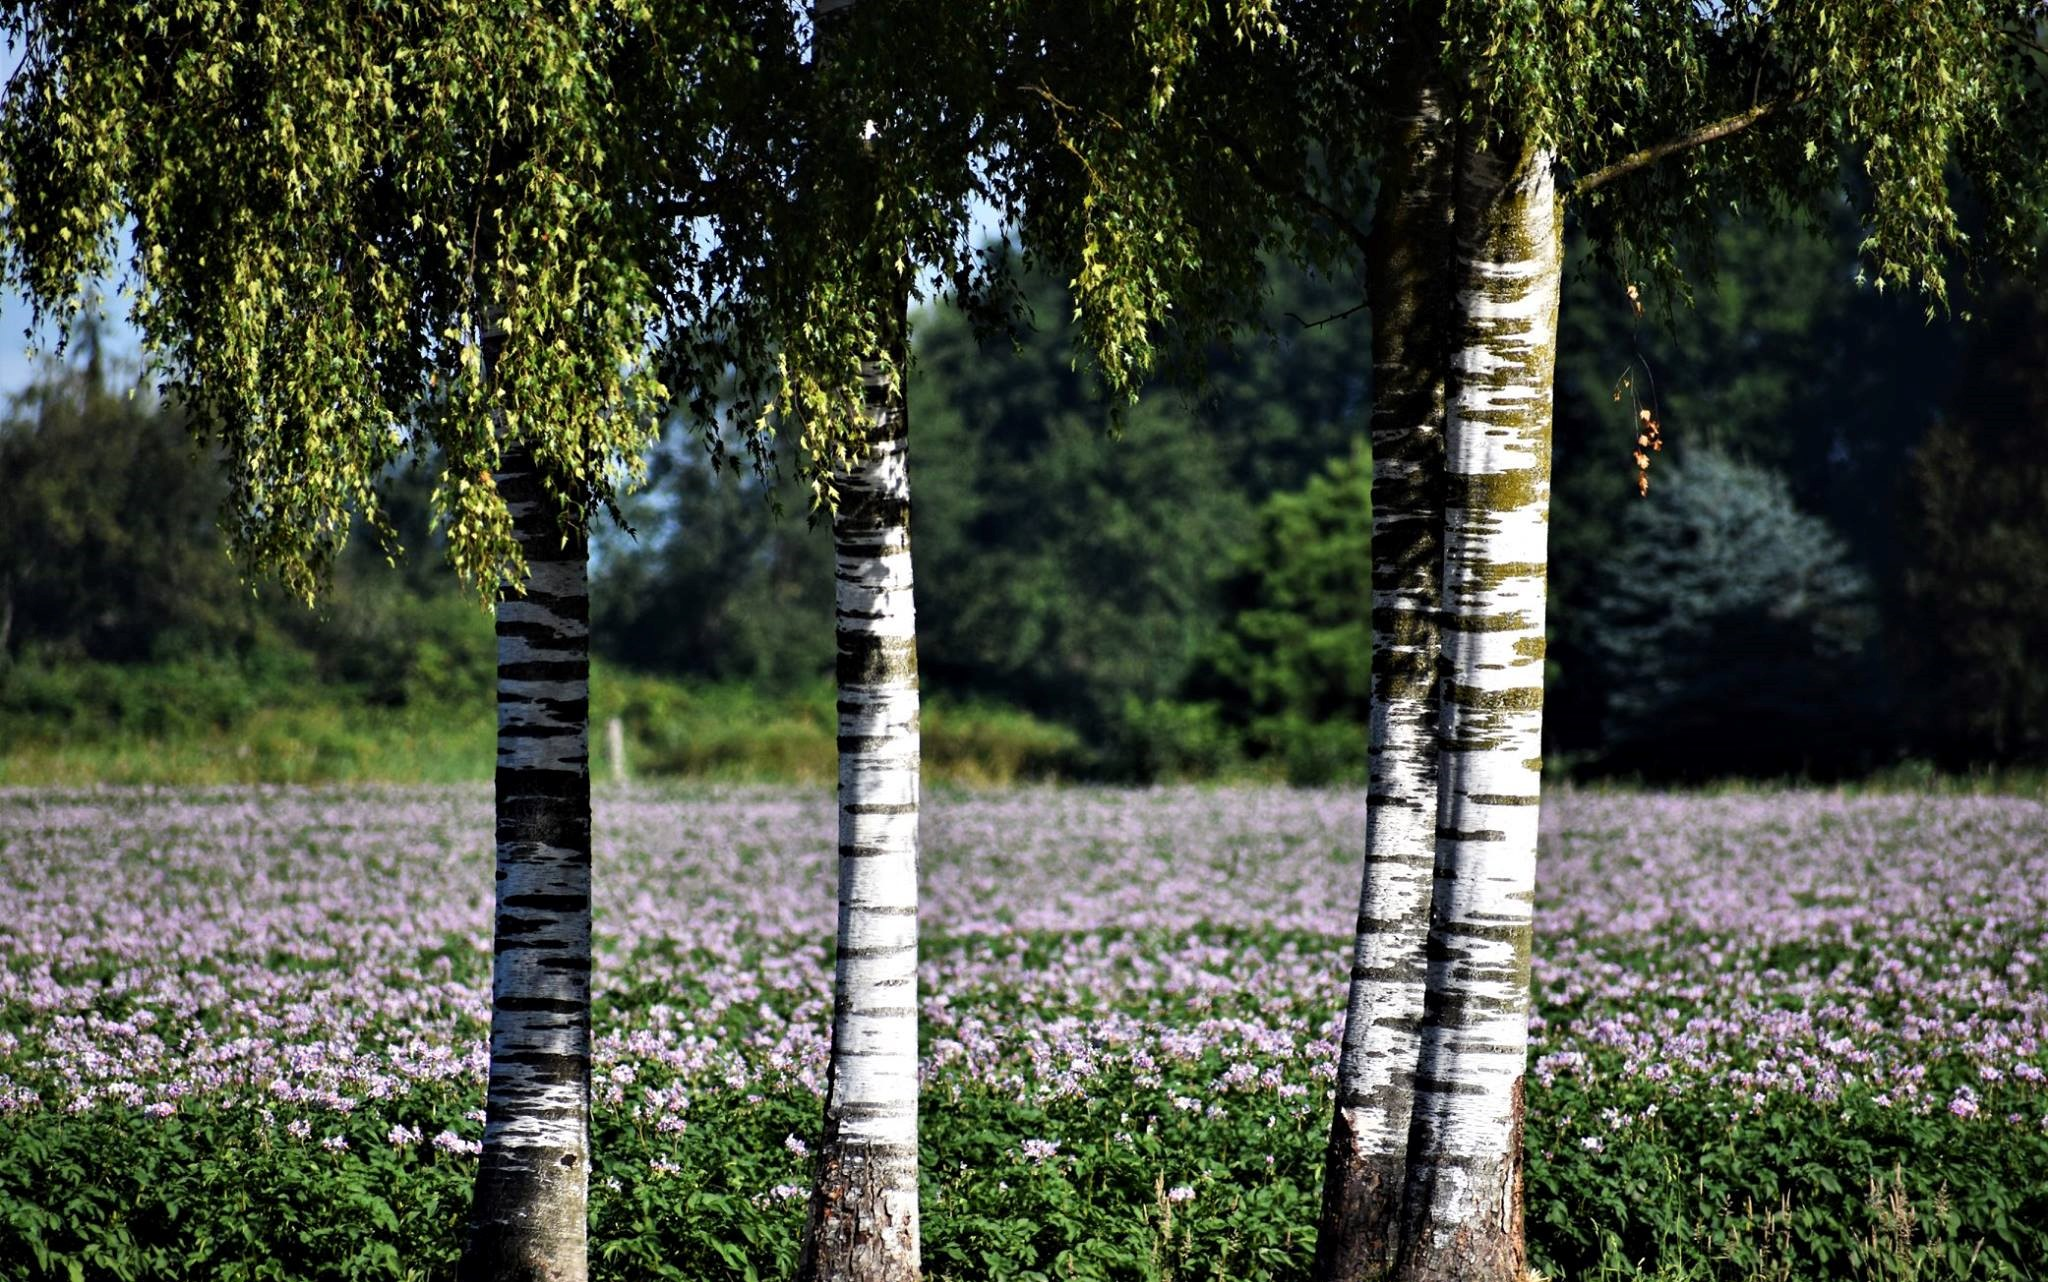 The birches with potatoes in bloom. A lovely, natural wedding arbor.